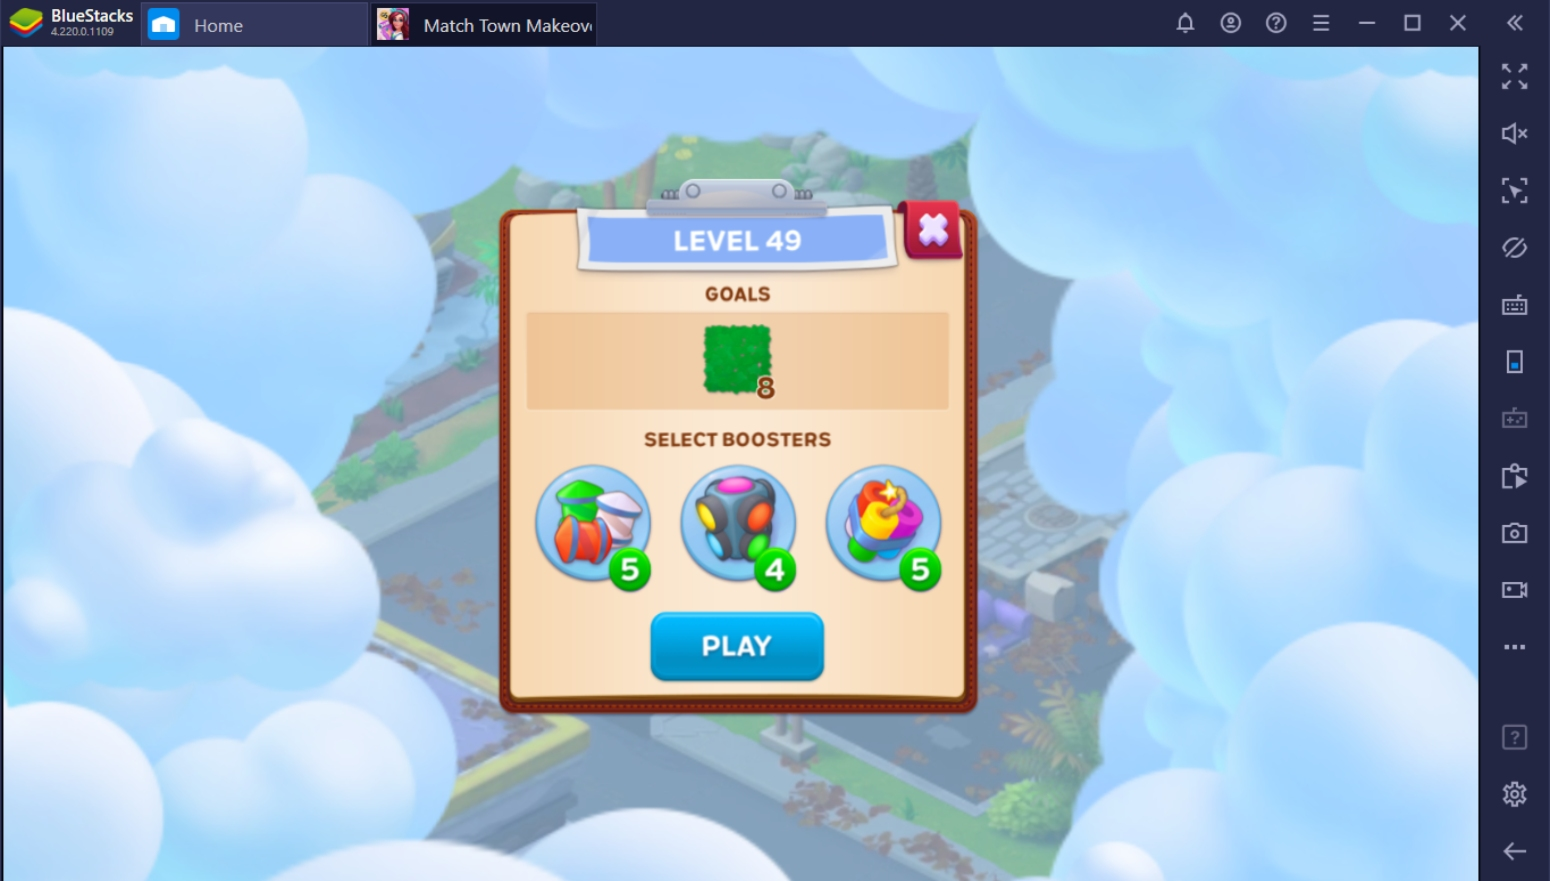 Match Town Makeover – Tips and Tricks To Play Better!